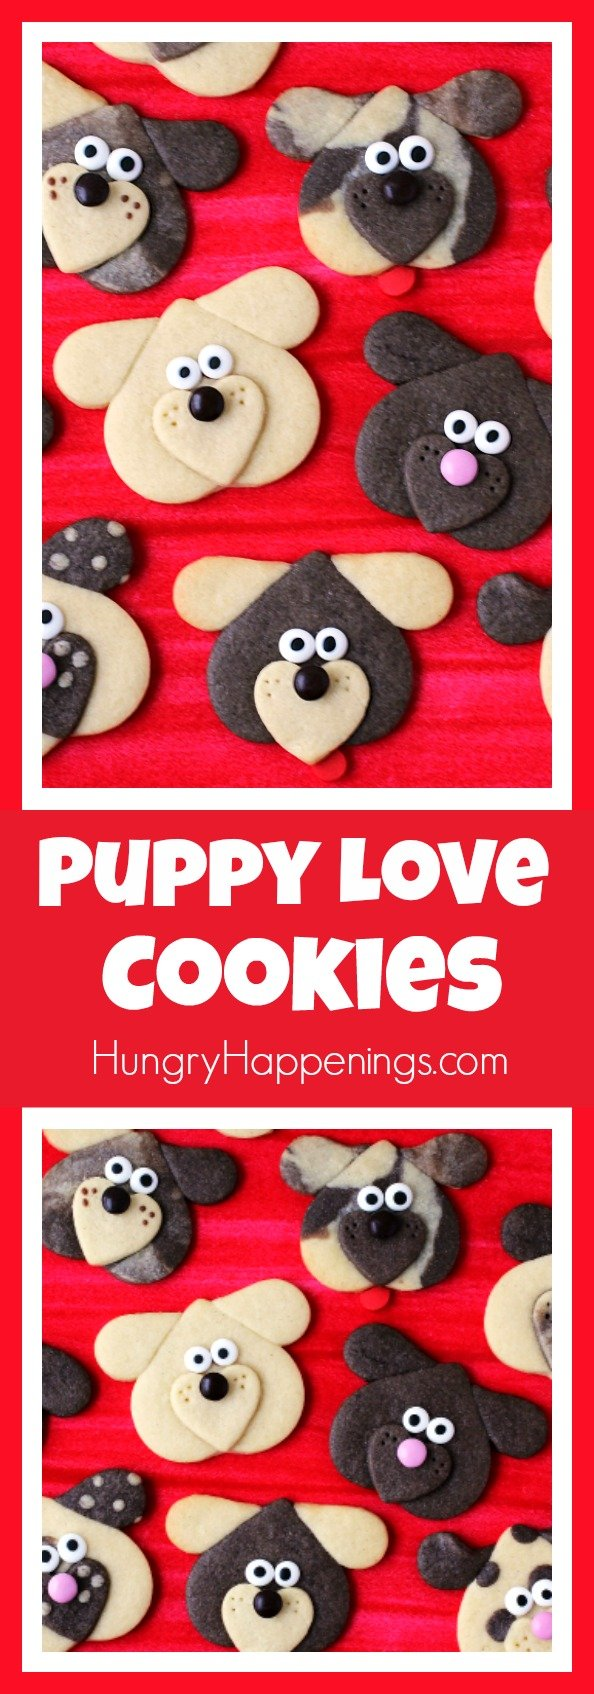 Create an entire litter of puppy dog shaped cookies by using 1 cookie dough and 3 heart shaped cookie cutters. These Puppy Love Cookies will make the cutest treats for Valentine's Day.